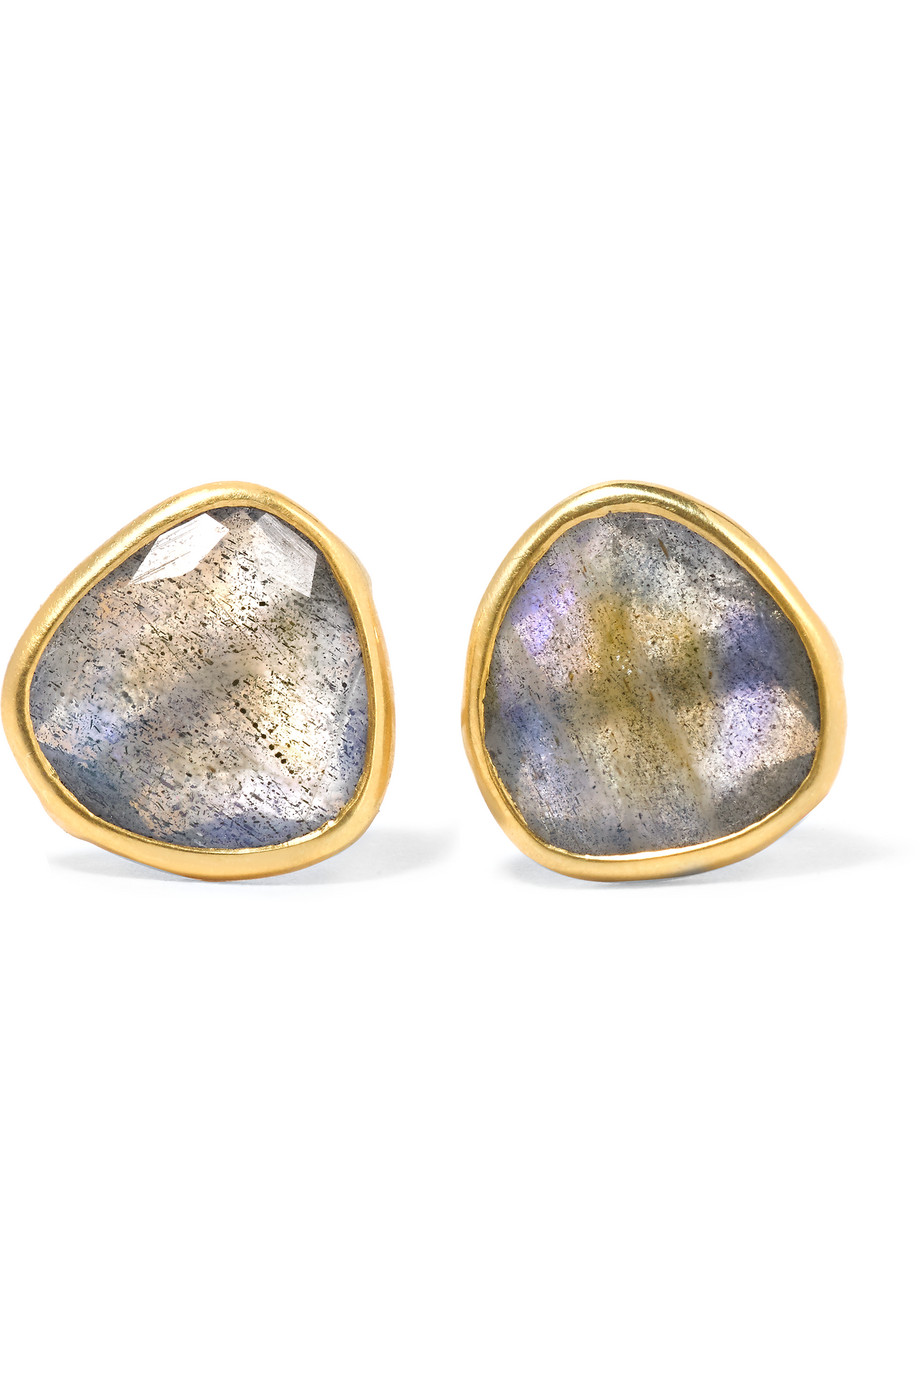 Pippa Small 18-Karat Gold Labradorite Earrings, Gold/Gray, Women's